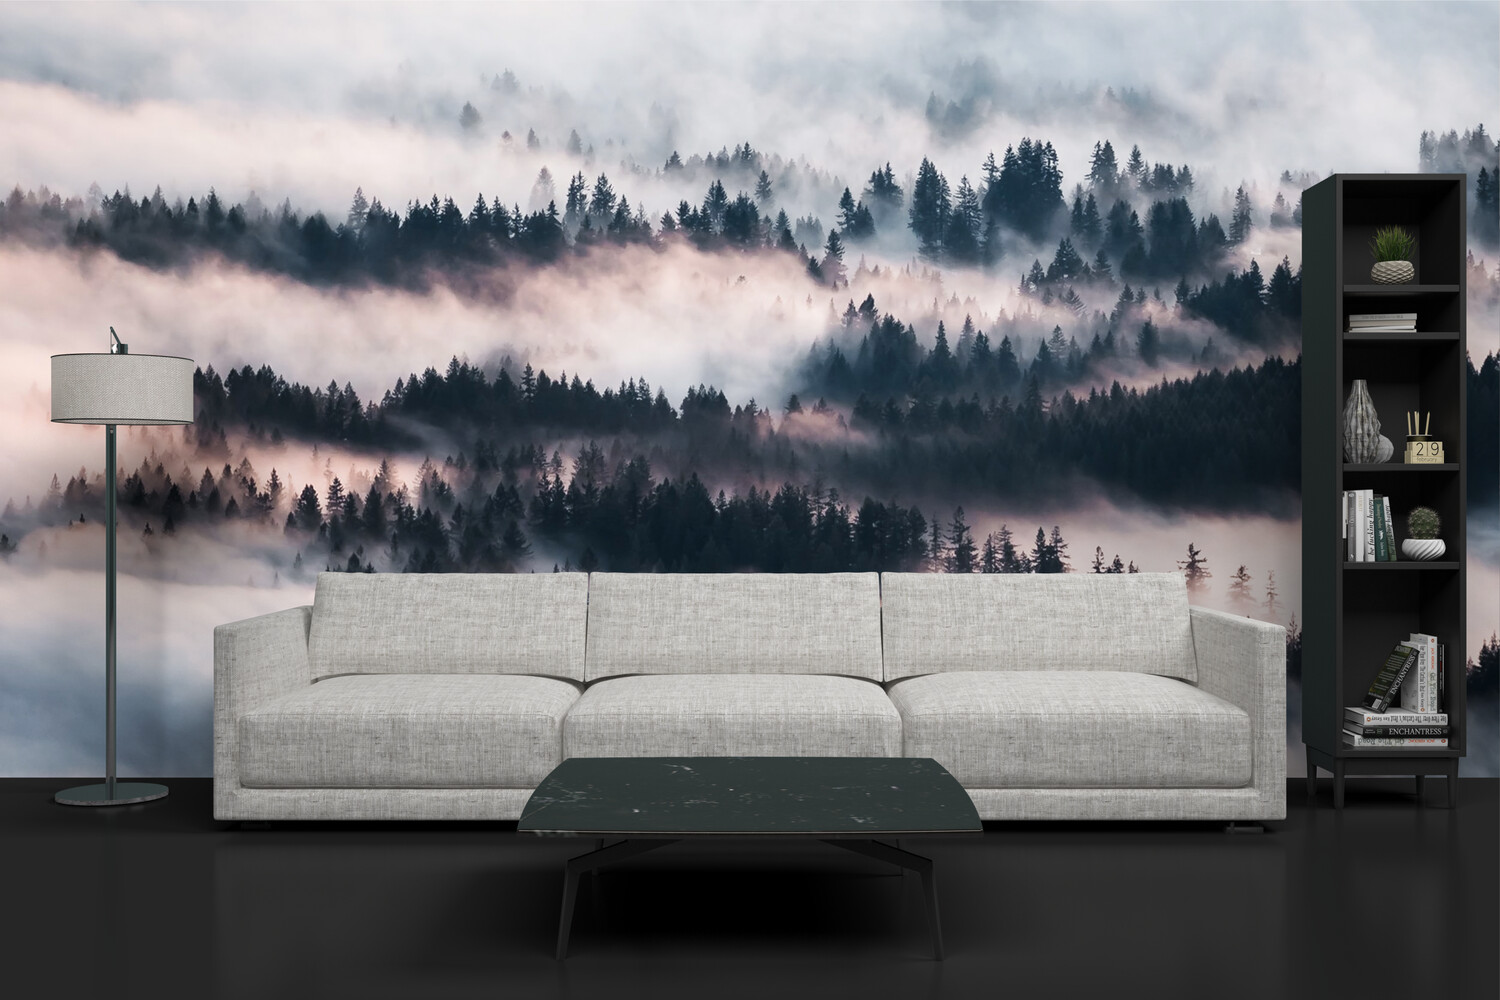 FOGGY FOREST | Vinyl Wall Mural for Any Room | Removable Vinyl Wallpaper